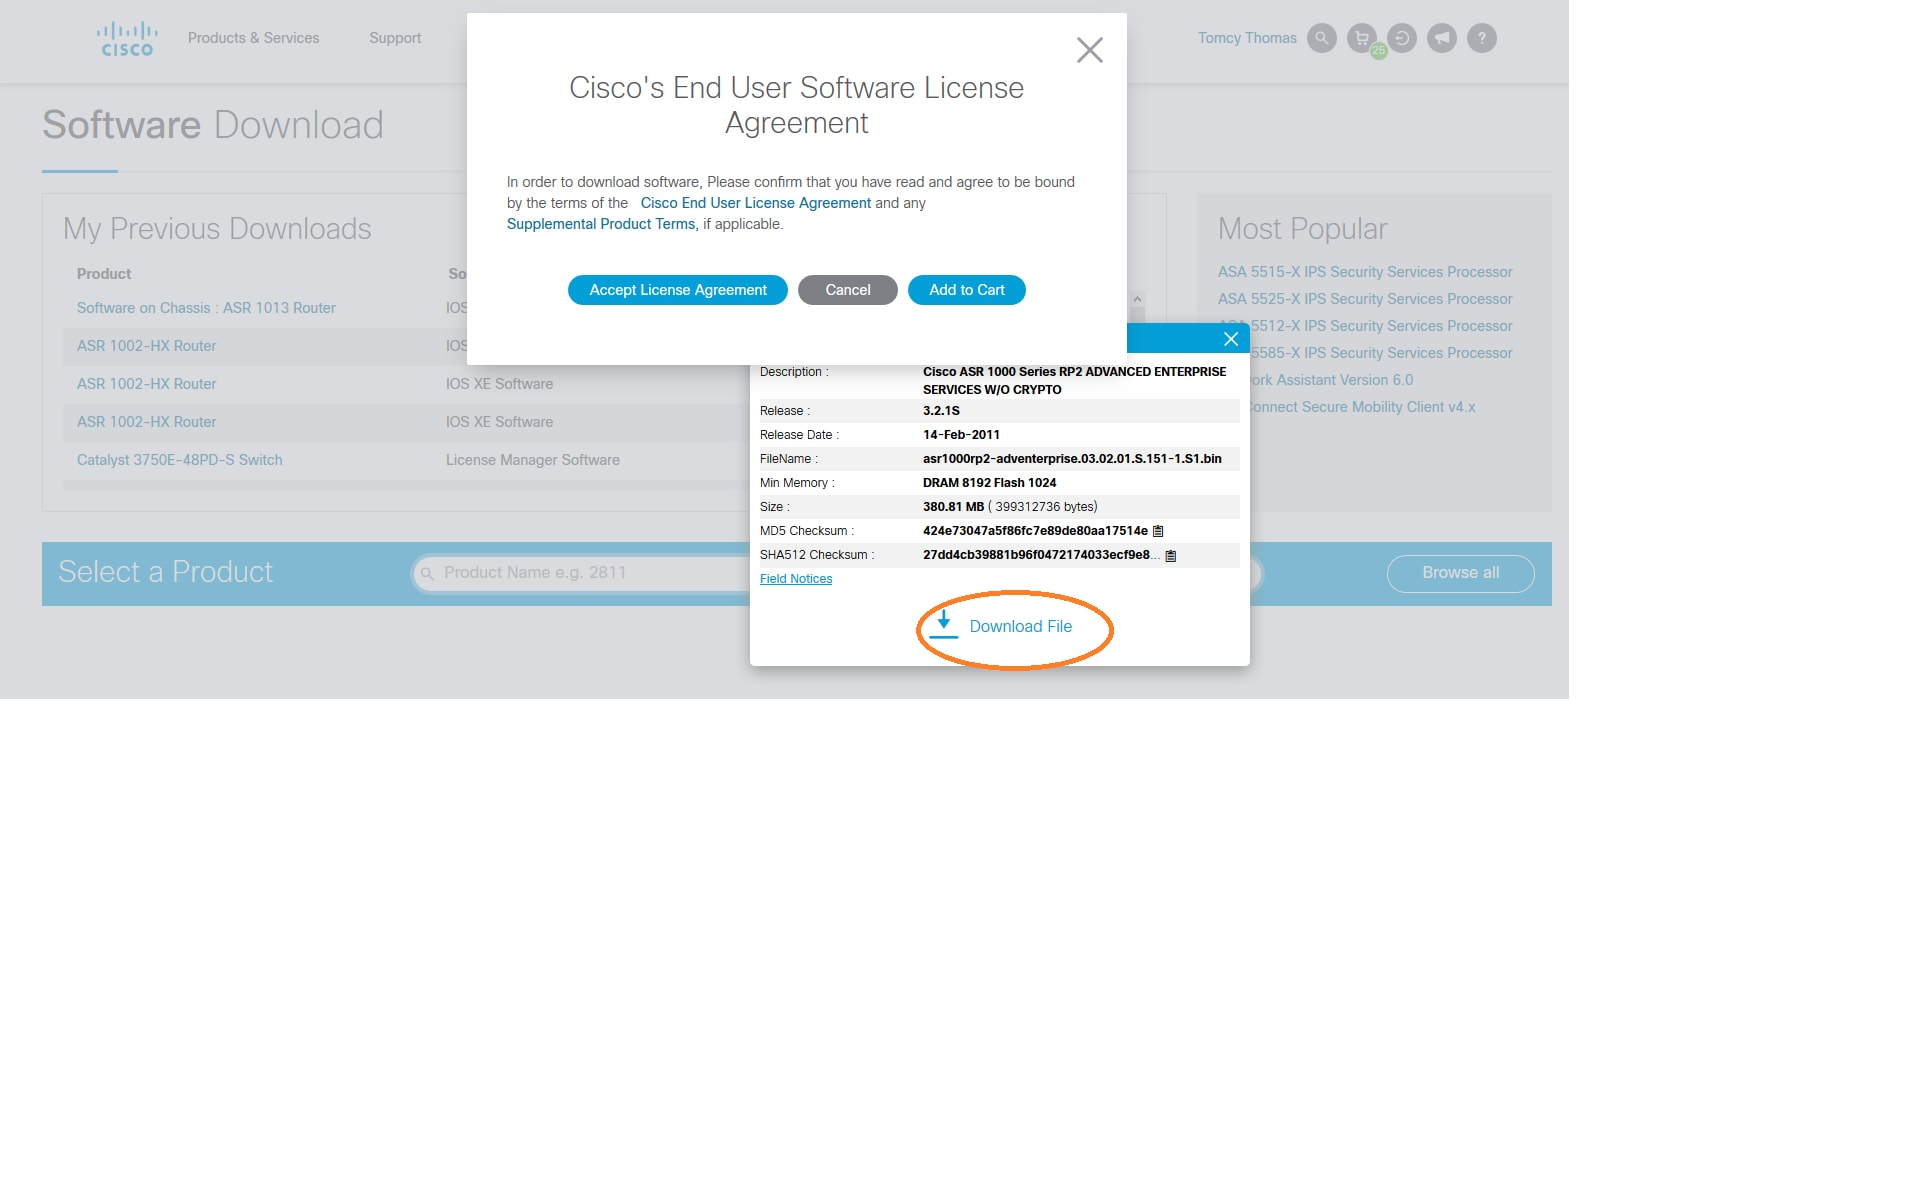 cisco software download page